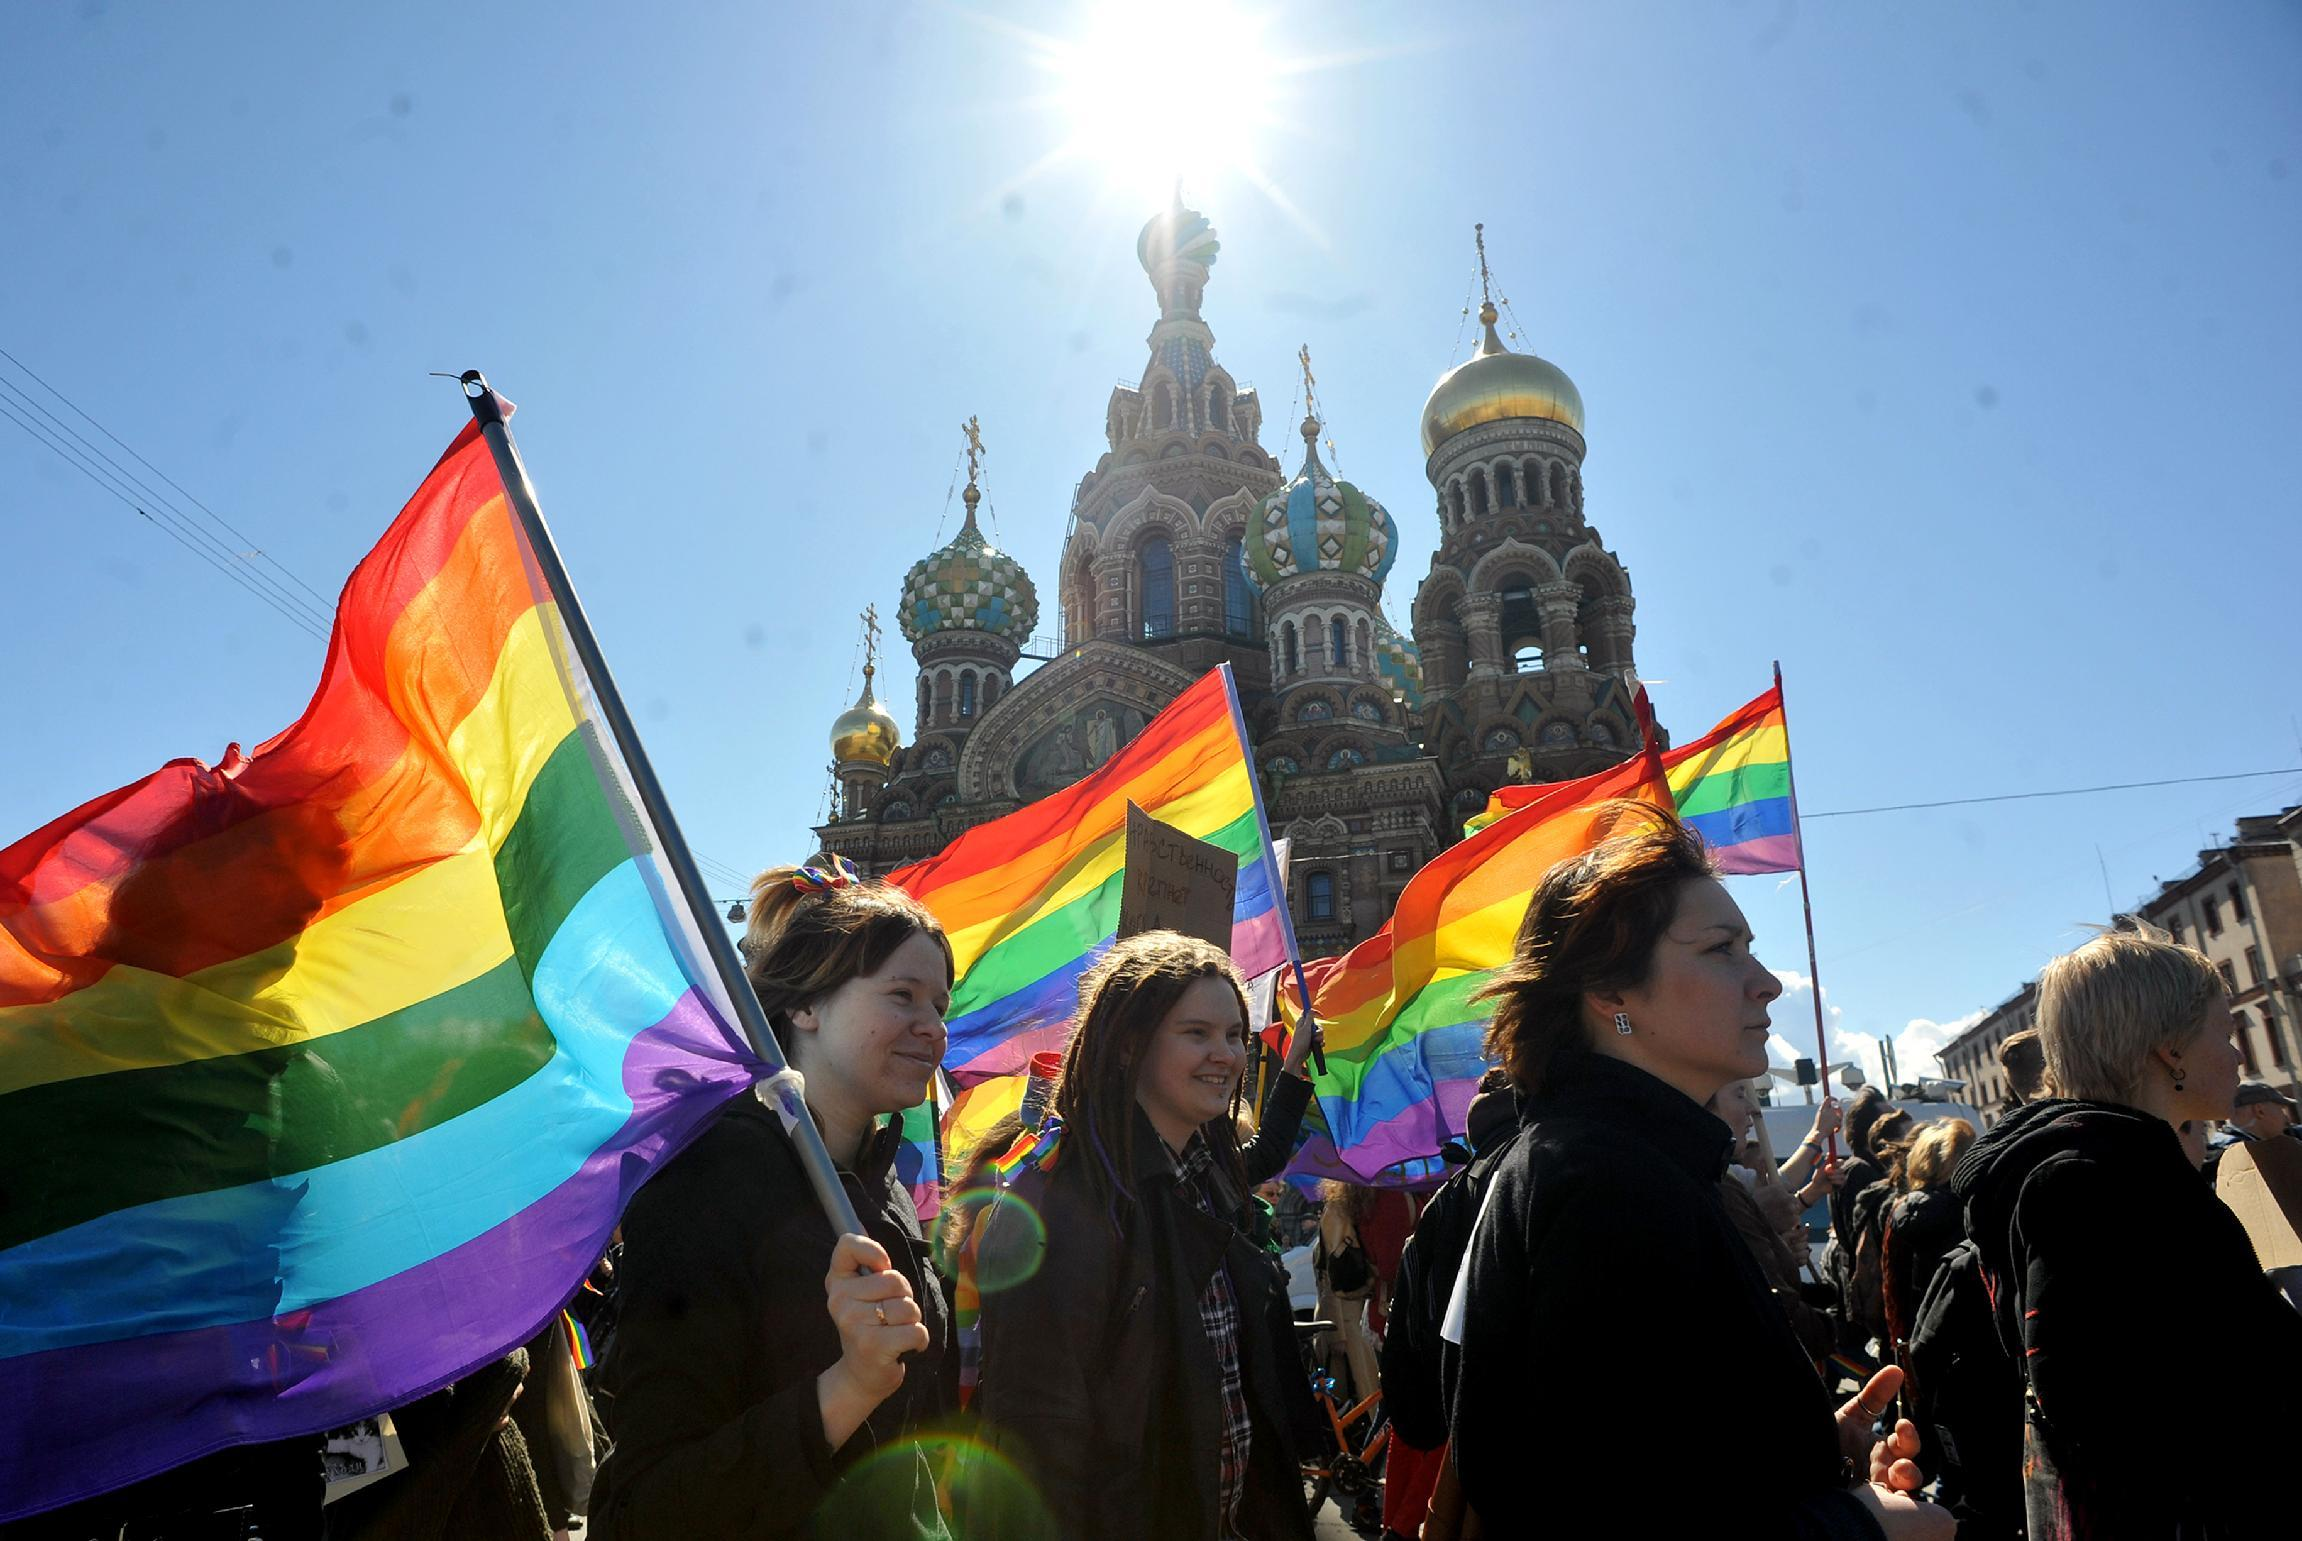 Founder of Russian gay teen site convicted of 'propaganda'